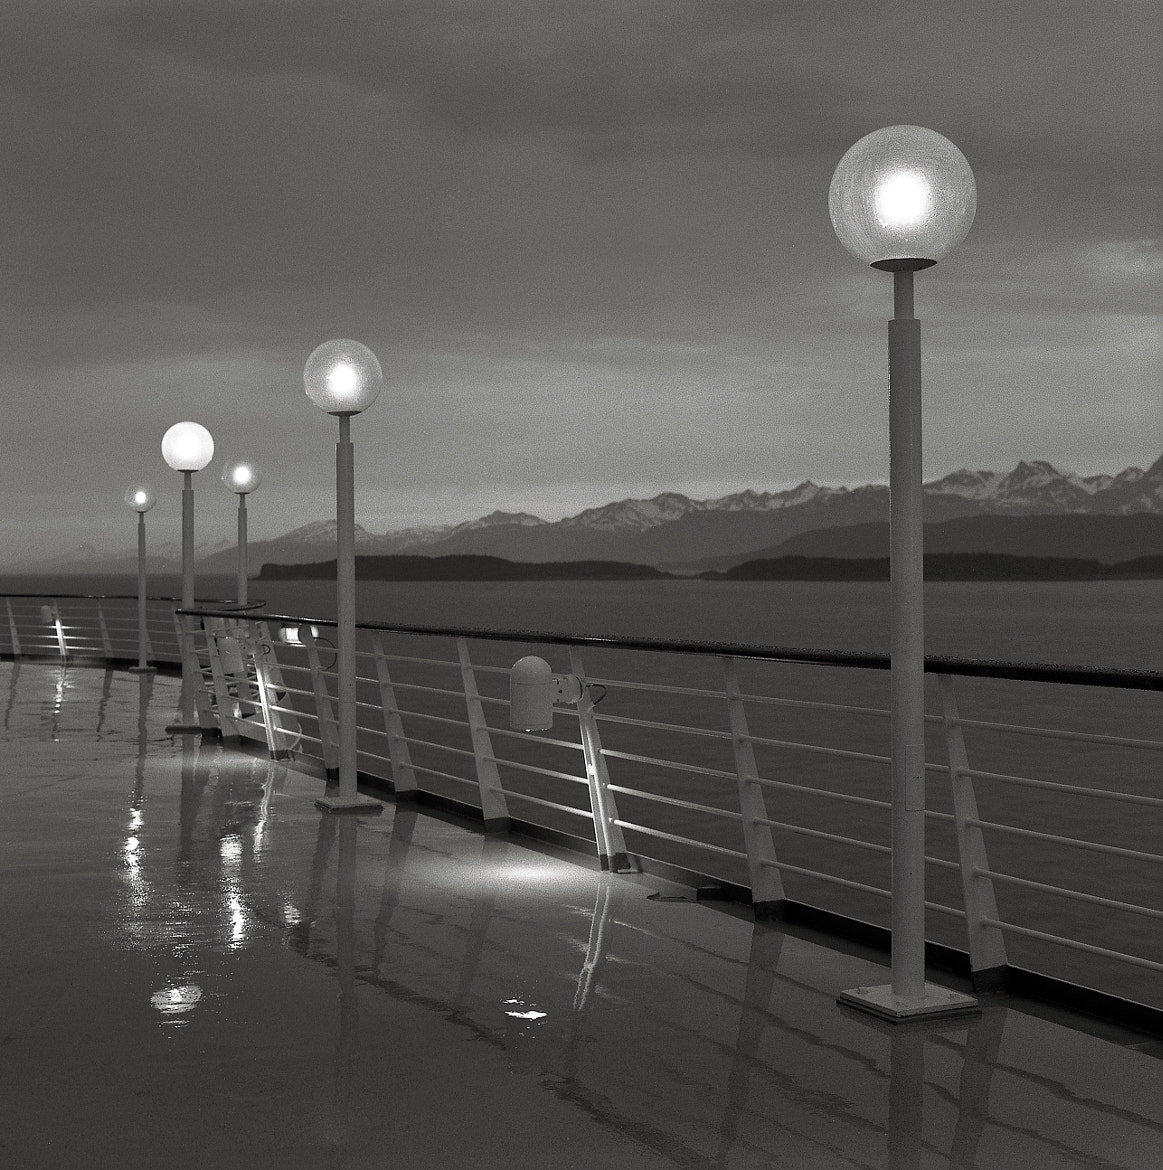 Photograph Lamps, Inside Passage, Alaska by Austin Granger on 500px